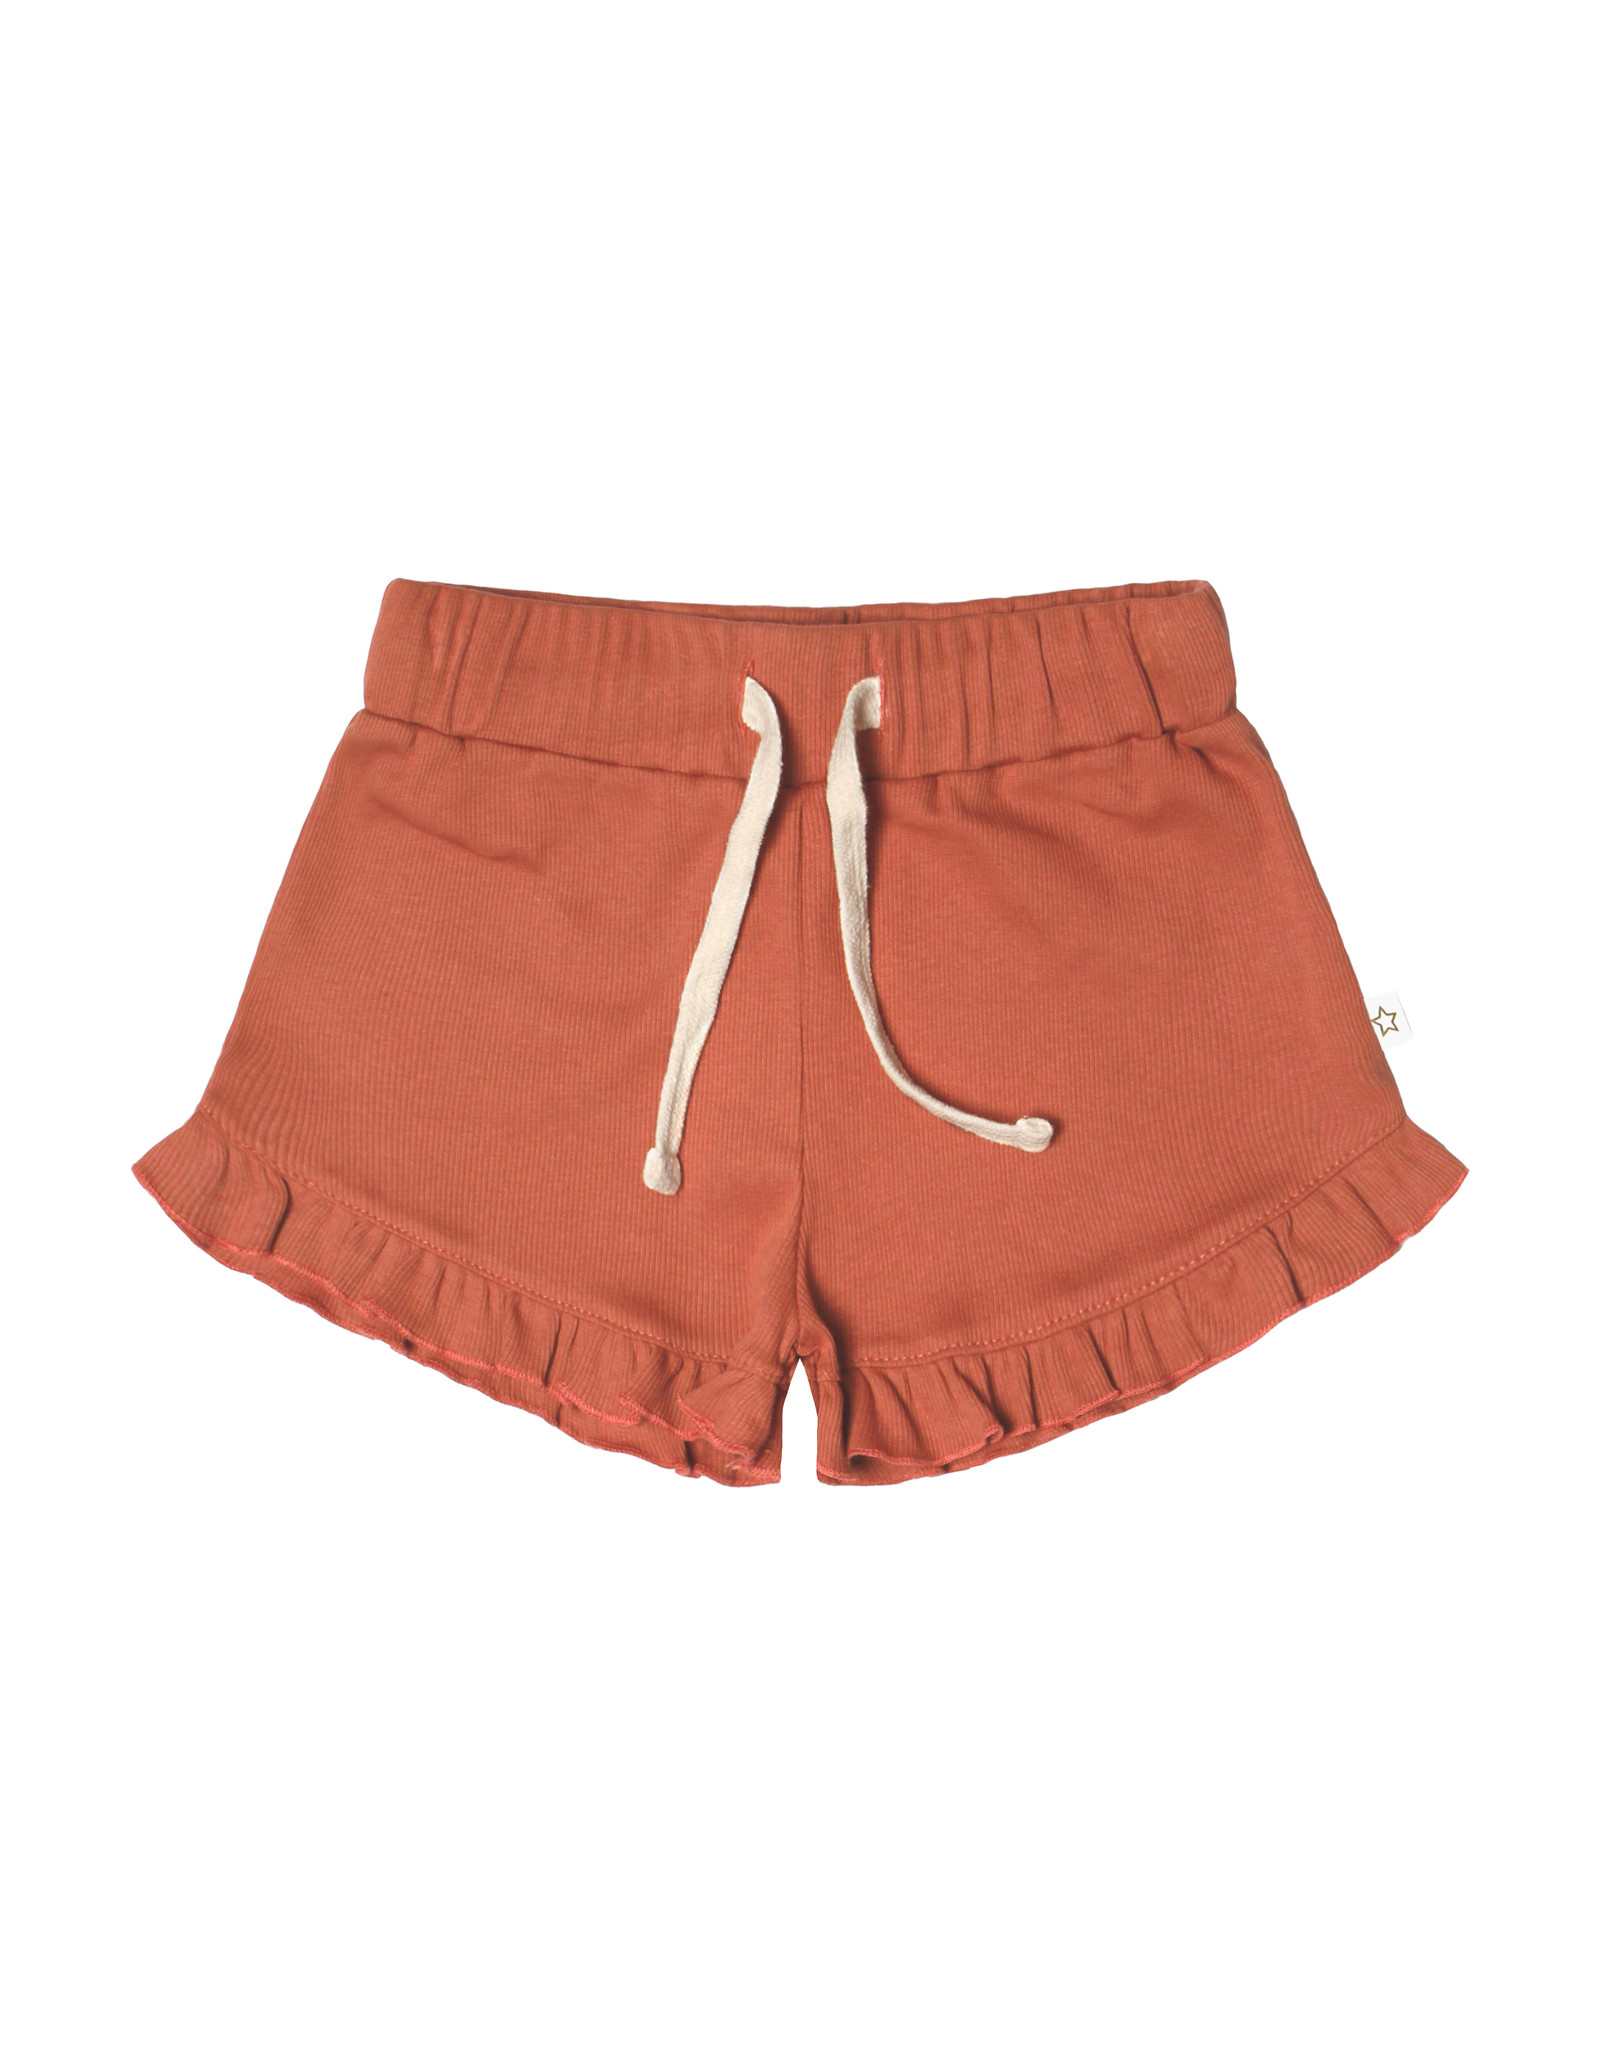 Your Wishes Your Wishes Rib Terra Ruffle Shorts